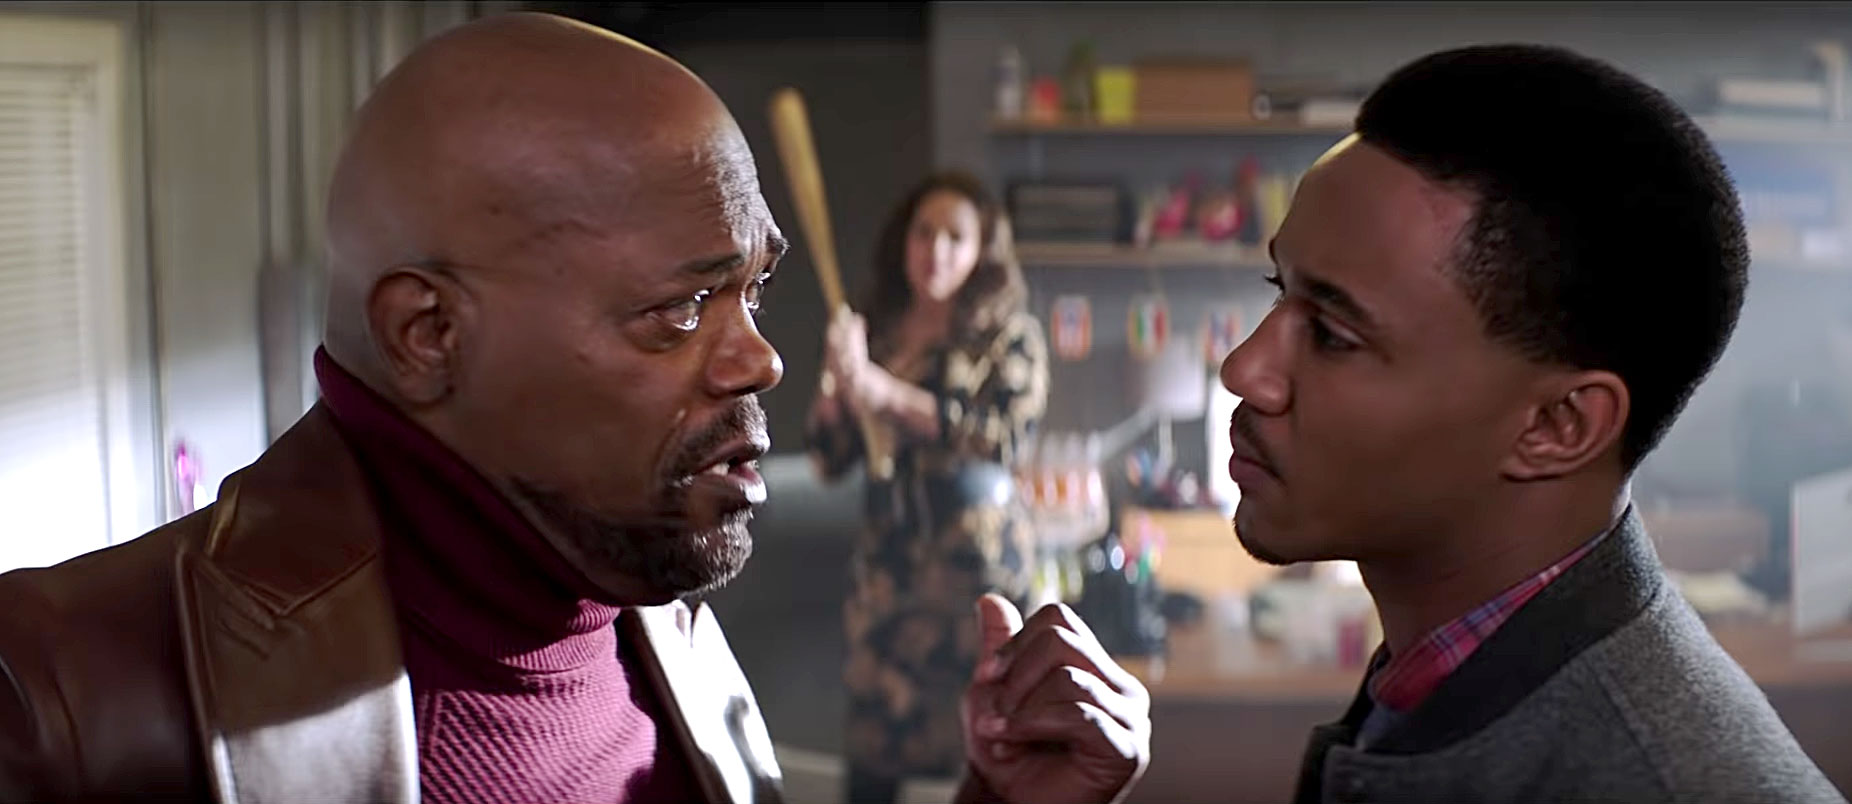 Can't Miss Summer Movie Preview - John Shaft Jr. ( Jessie T. Usher ) turns to his estranged dad, John Shaft II (summer staple Samuel L. Jackson ), for help after his best friend is murdered in the fifth movie of the Shaft franchise. And while Shaft may be a strong man, he has a soft spot for his ex ( Regina Hall ).